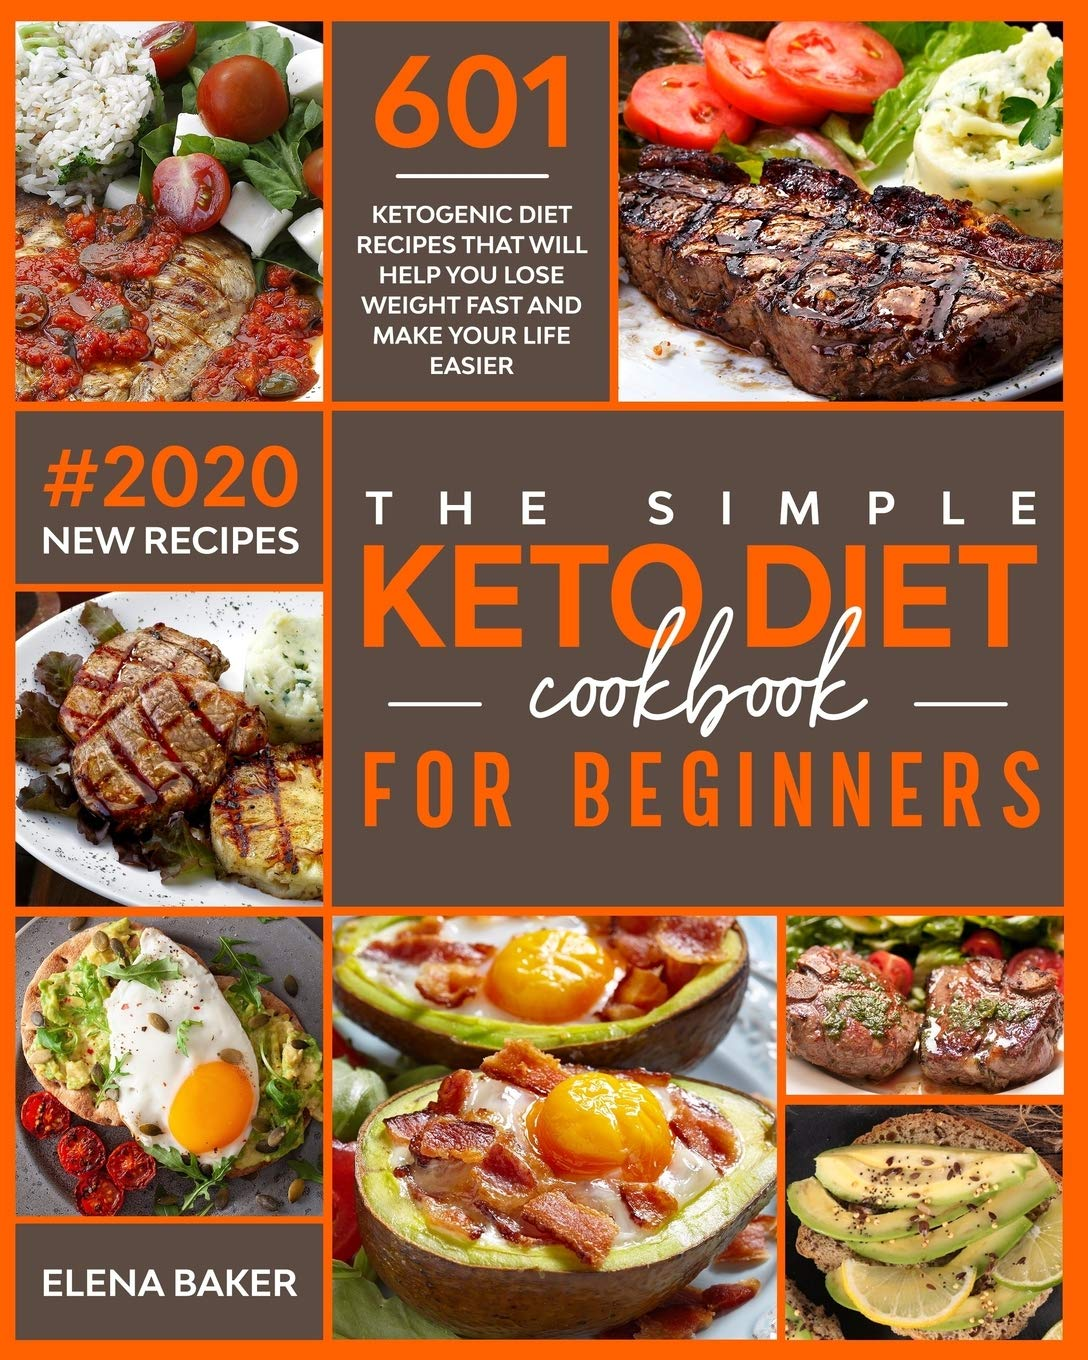 Amazon Com The Simple Keto Diet Cookbook For Beginners 601 Ketogenic Diet Recipes That Will Help You Lose Weight Fast And Make Your Life Easier 2020 New Recipes 9781650018881 Baker Elena Books